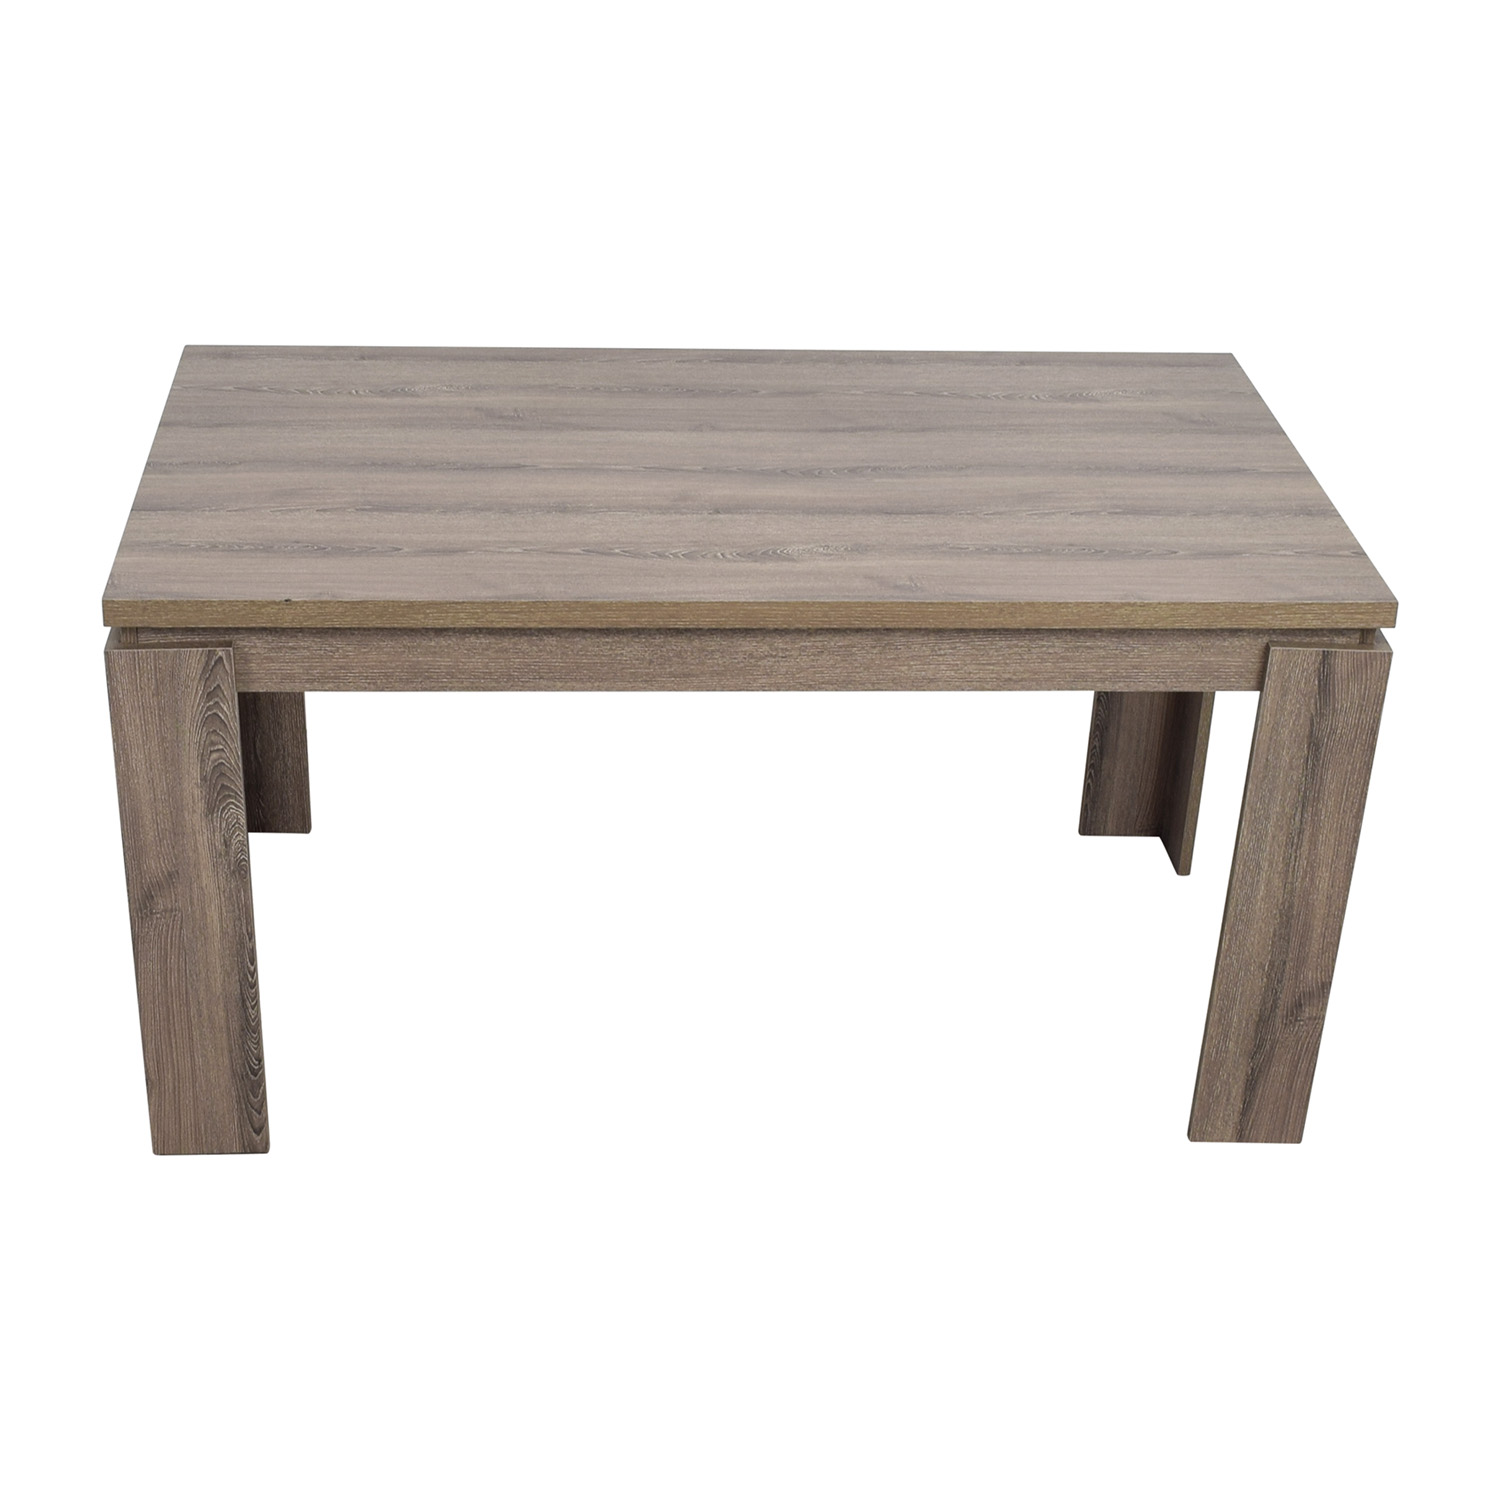 WilliamBrugman WilliamBrugman Rustic Grey Table dimensions